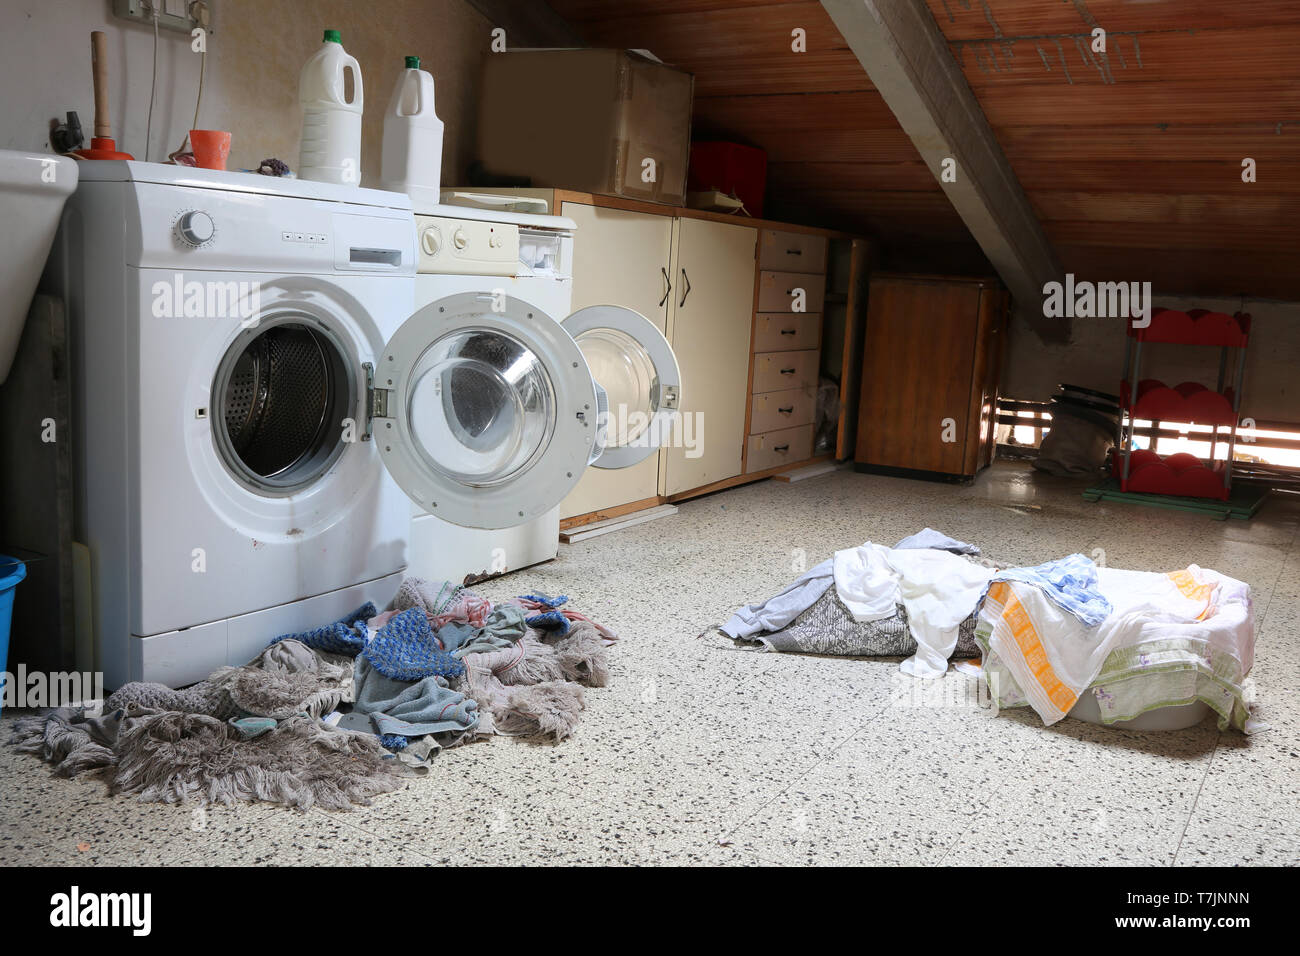 Inside a dusty attic of a school with two big washing machines and tatters dirty - Stock Image